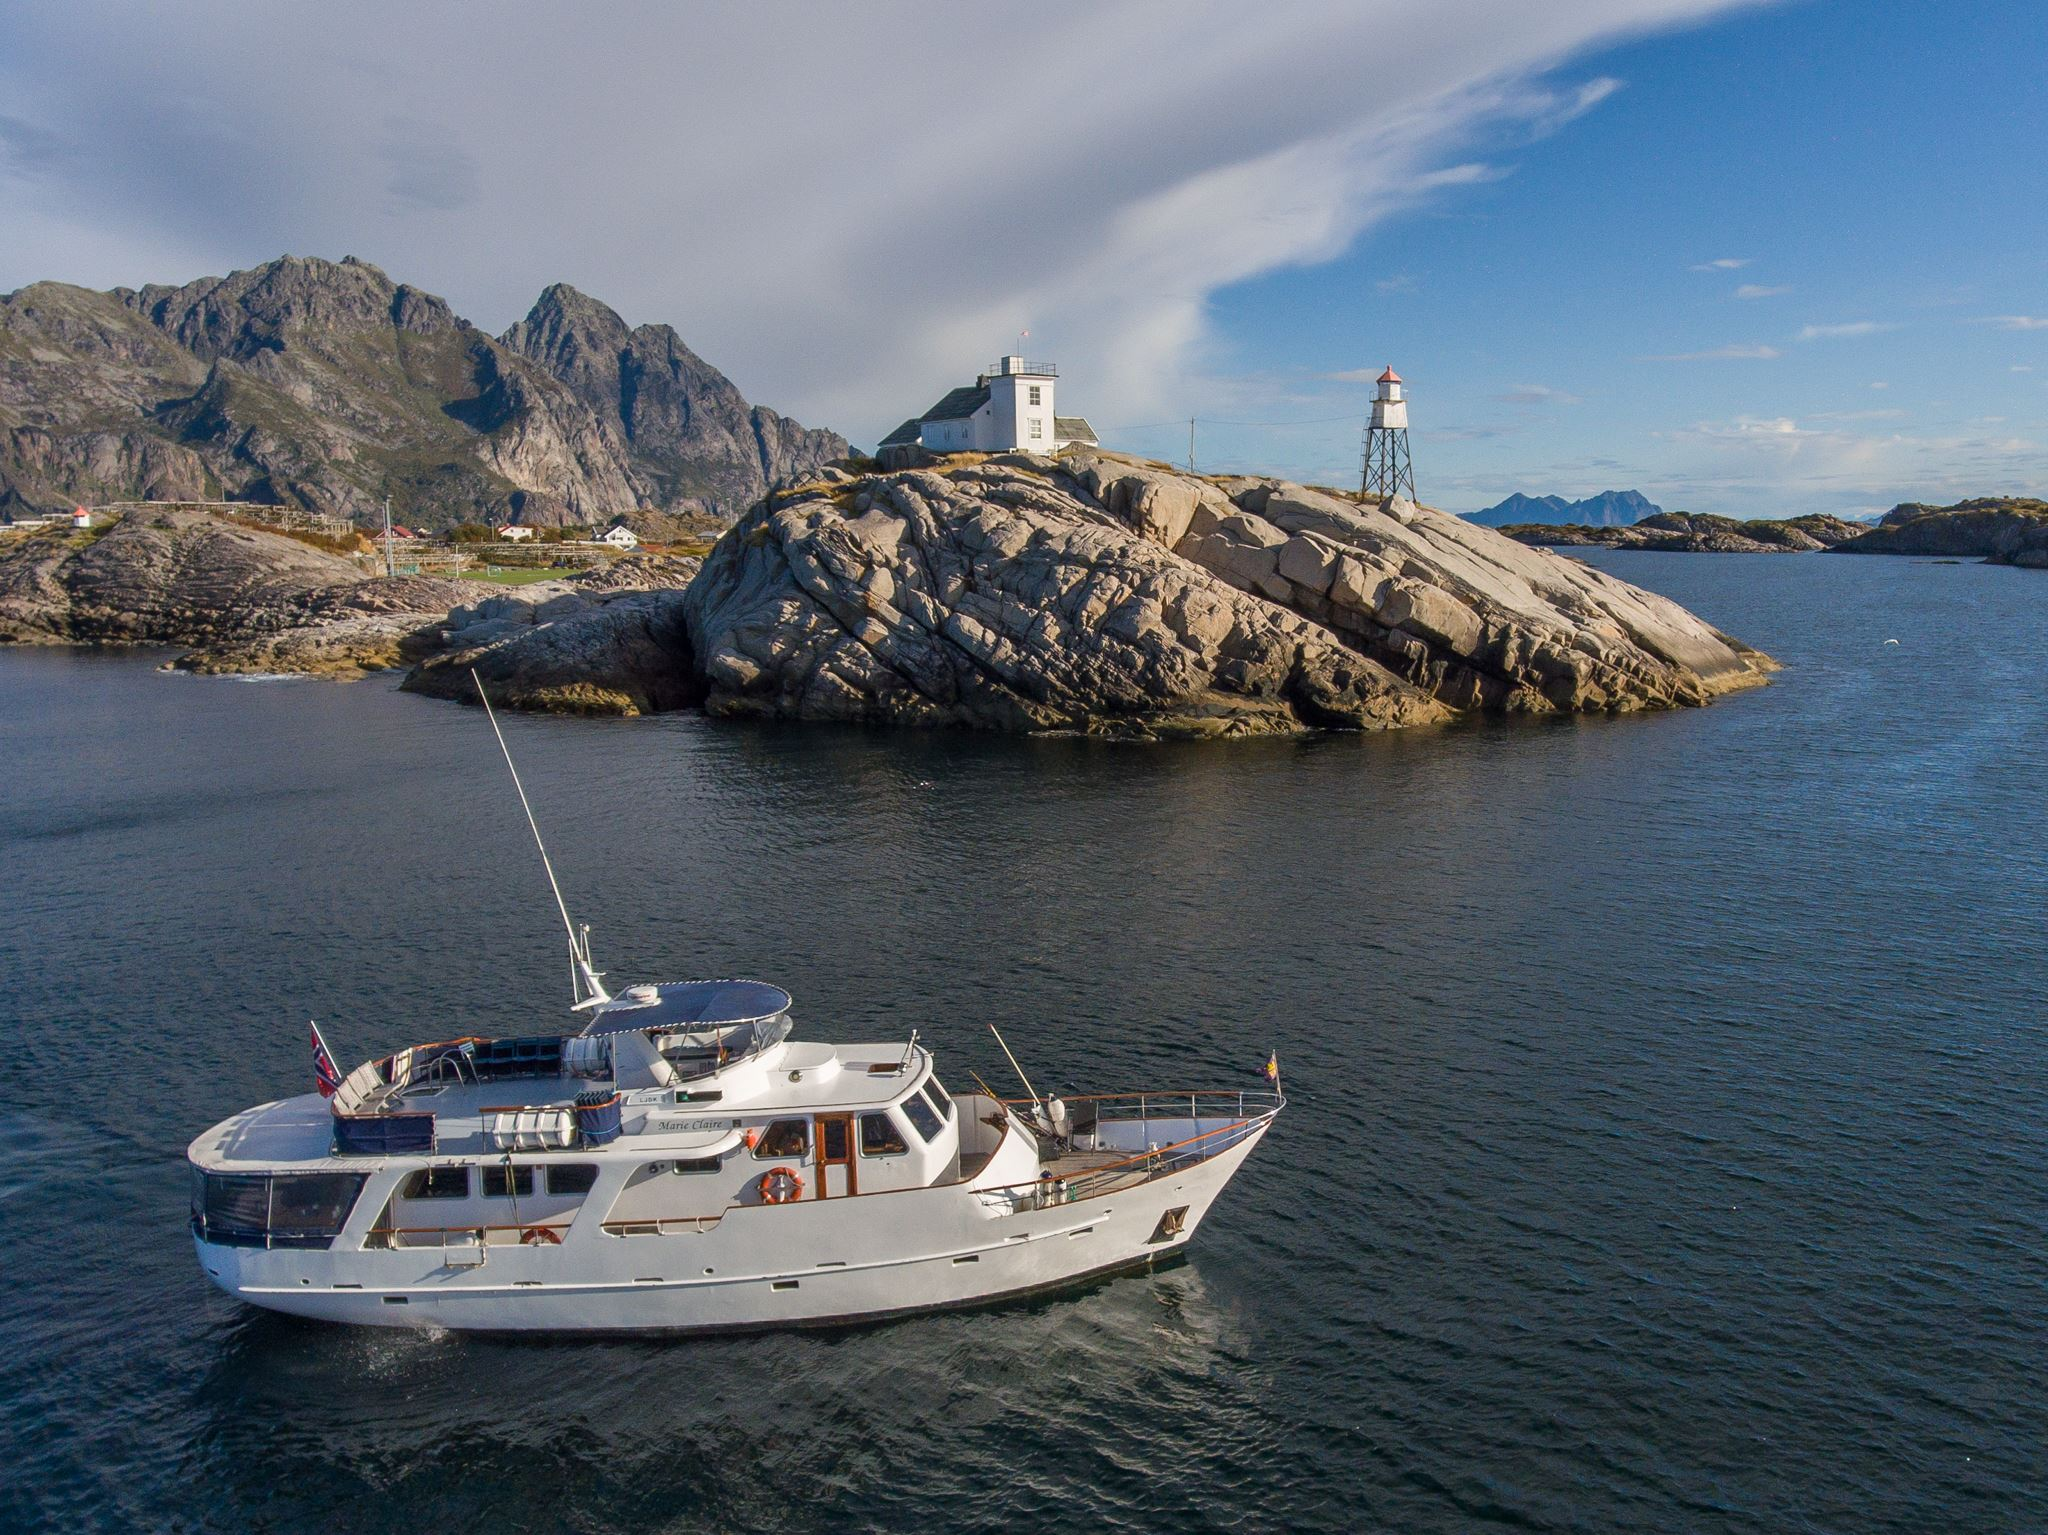 Whale Safari and Northern Lights to Skjervøy on a Presidential Yacht